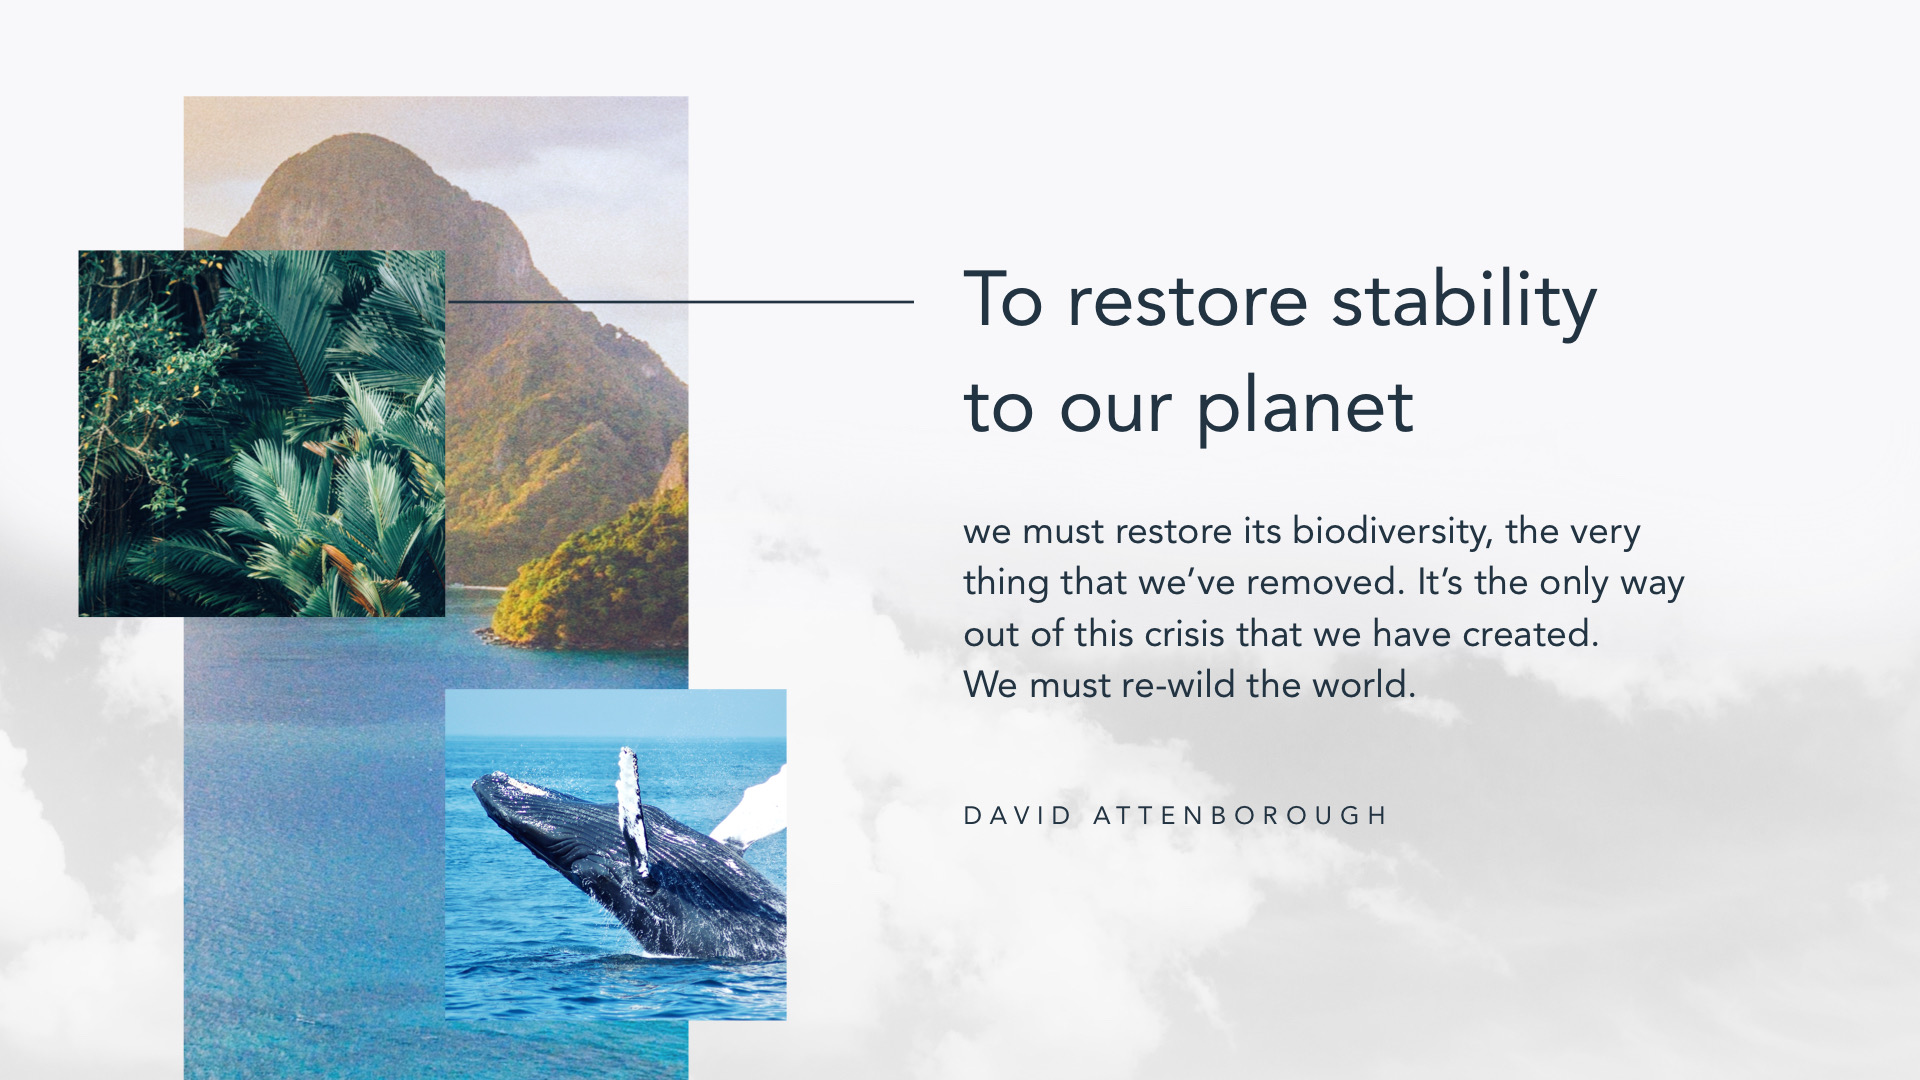 David Attenborough is teaching us how to live more sustainably